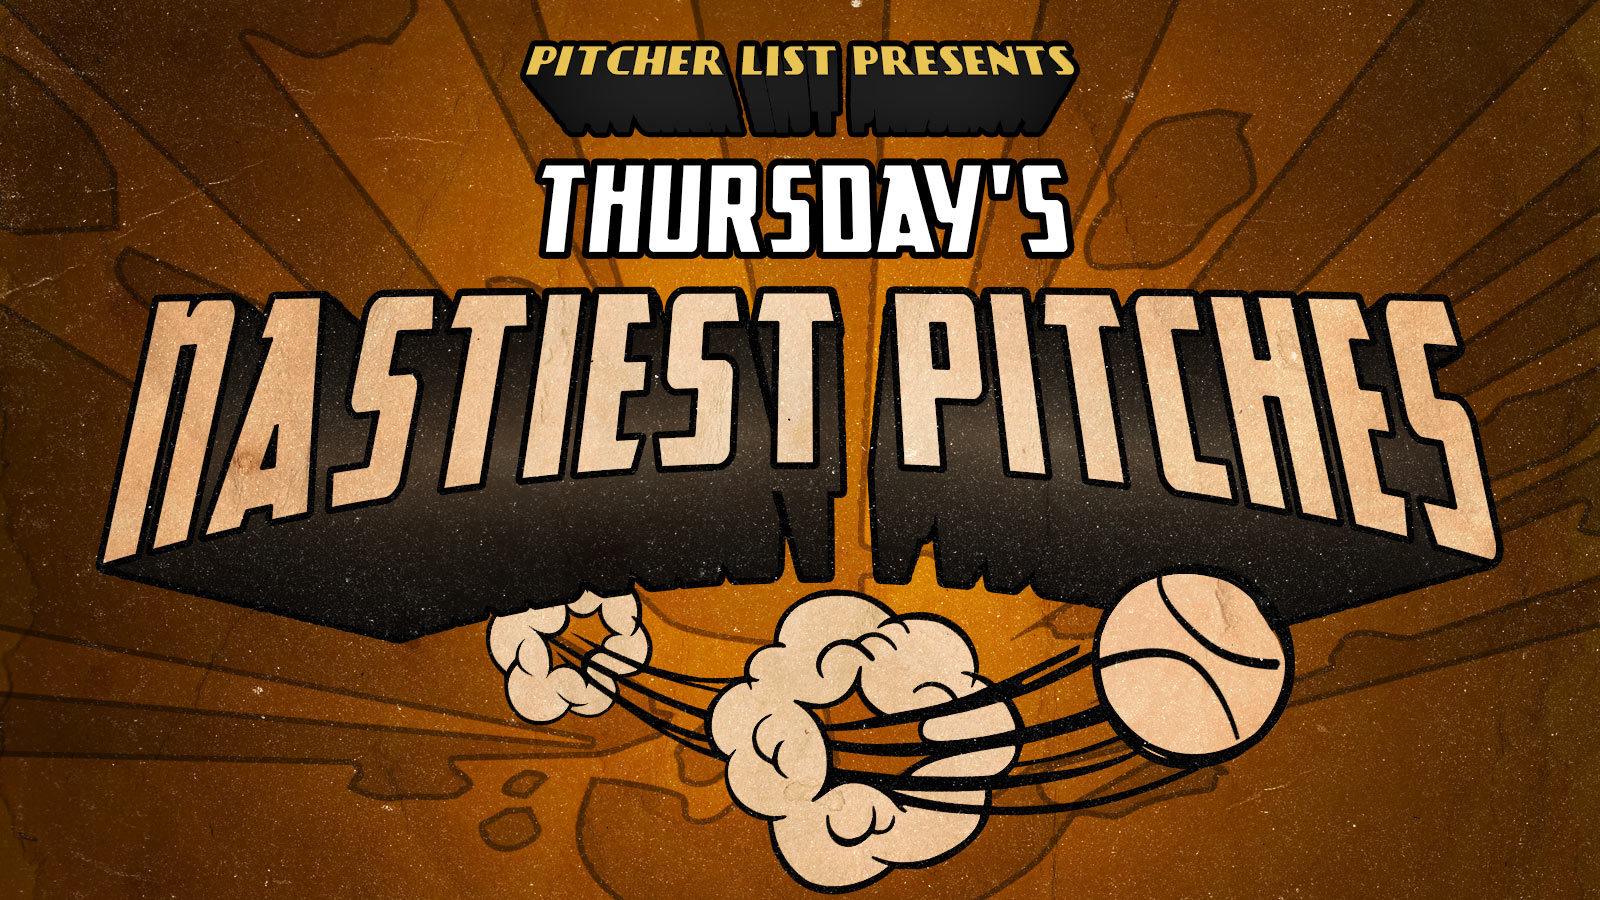 Nastiest-pitches-new-thursday-1600x900